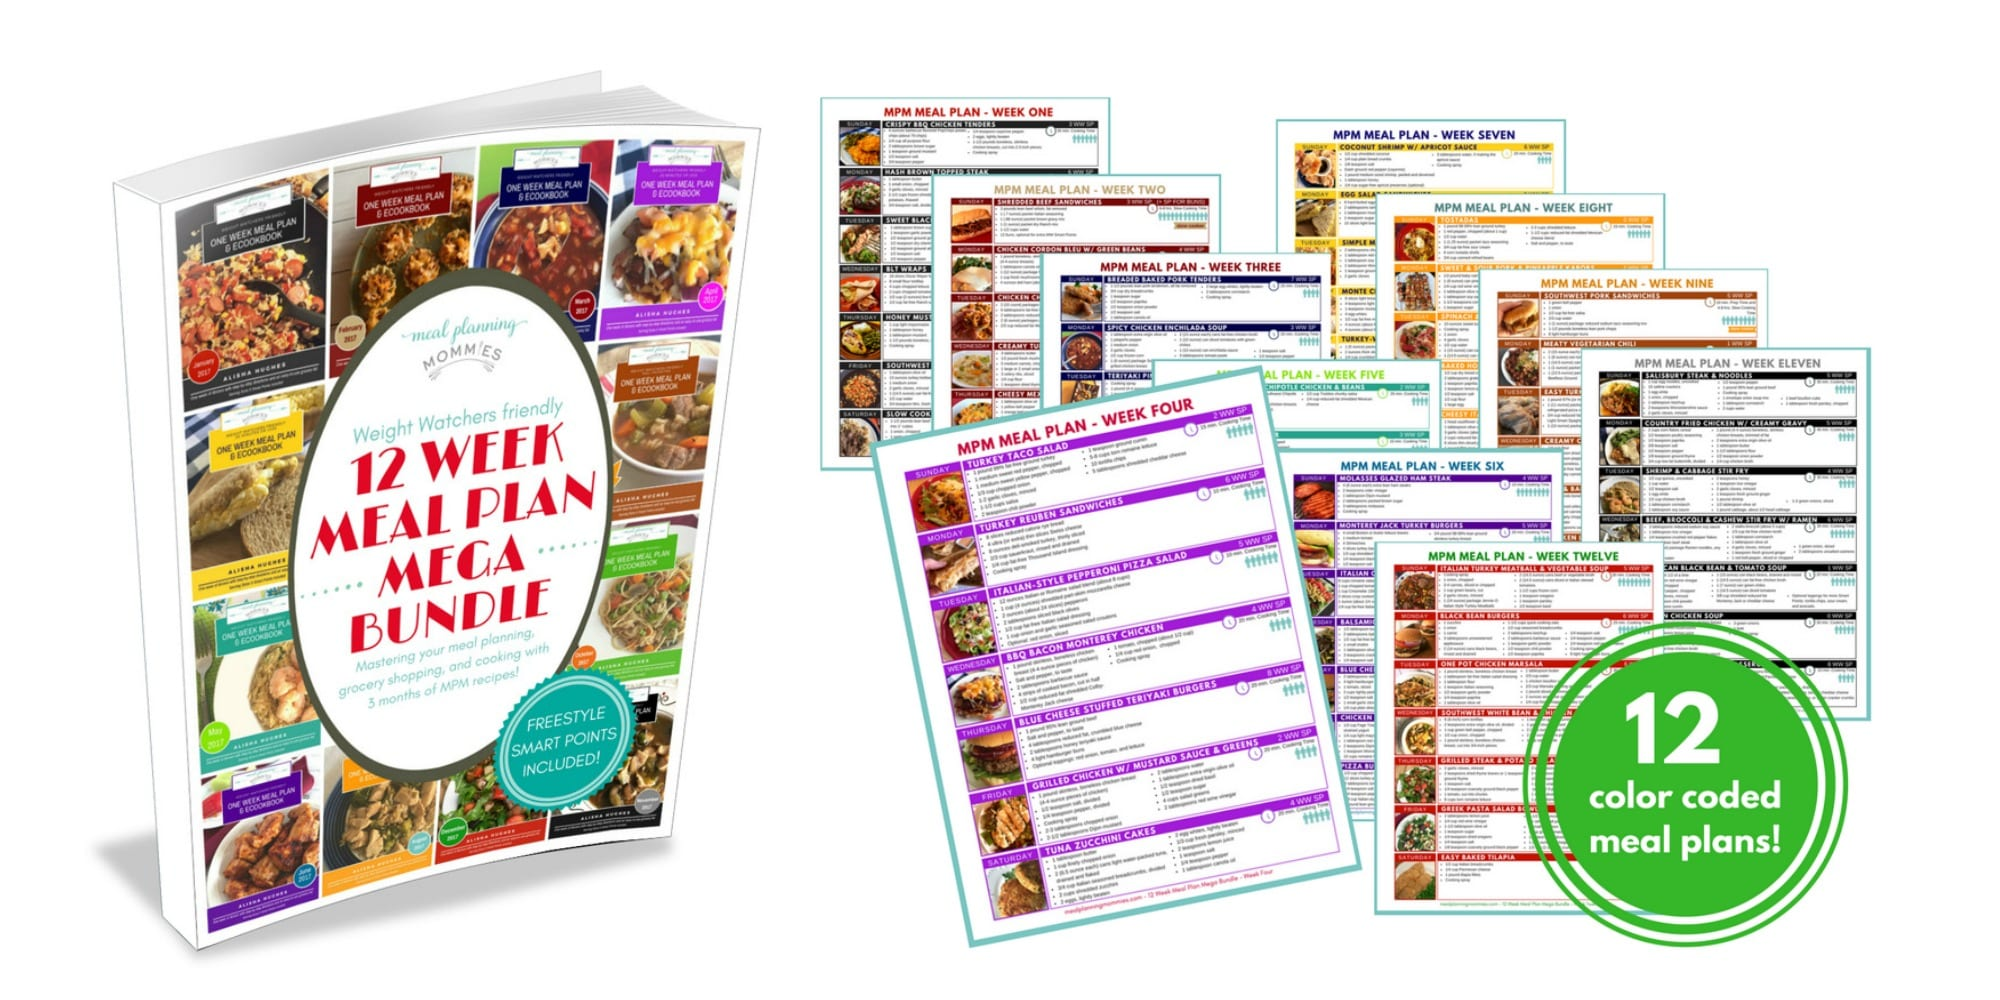 """I love this """"12 Week Meal Plan Mega Bundle"""" ebook from Meal Planning Mommies. All recipes include WW FreeStyle SmartPoints per serving."""